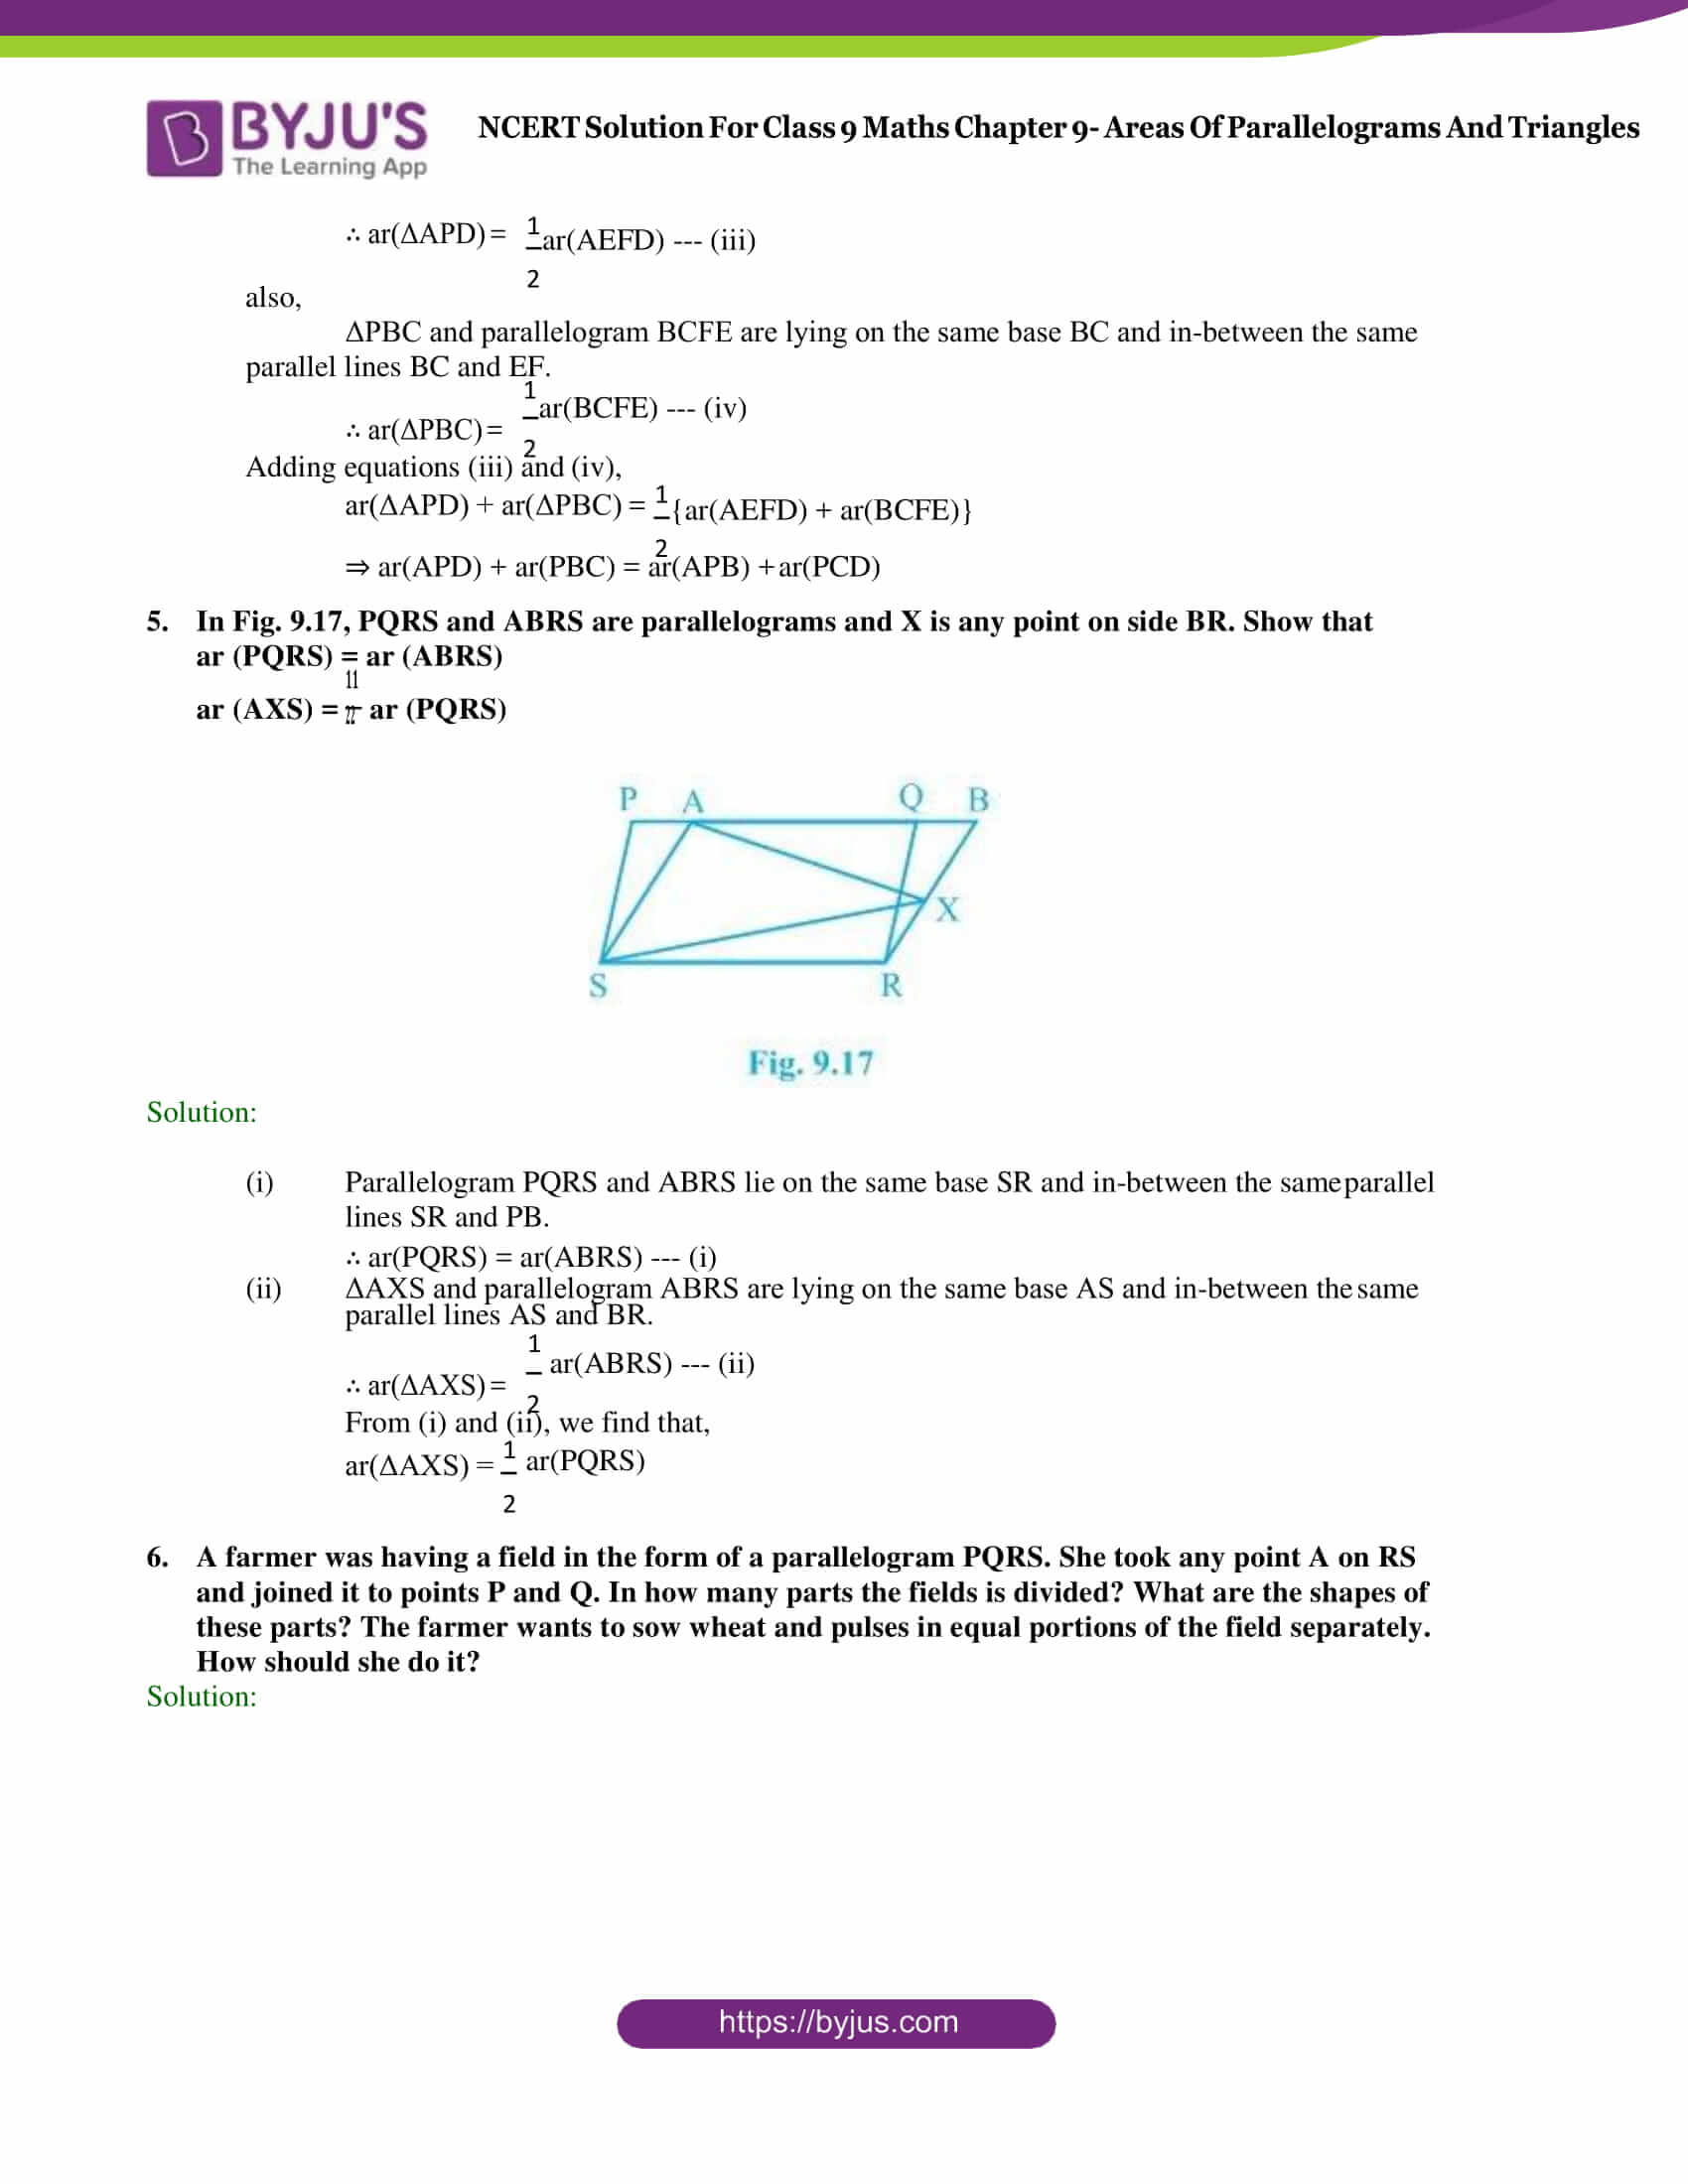 NCERT Solution Class 9 Maths Chapter 9 Areas of Parallelograms and triangles Exercise 9.2 Part 4